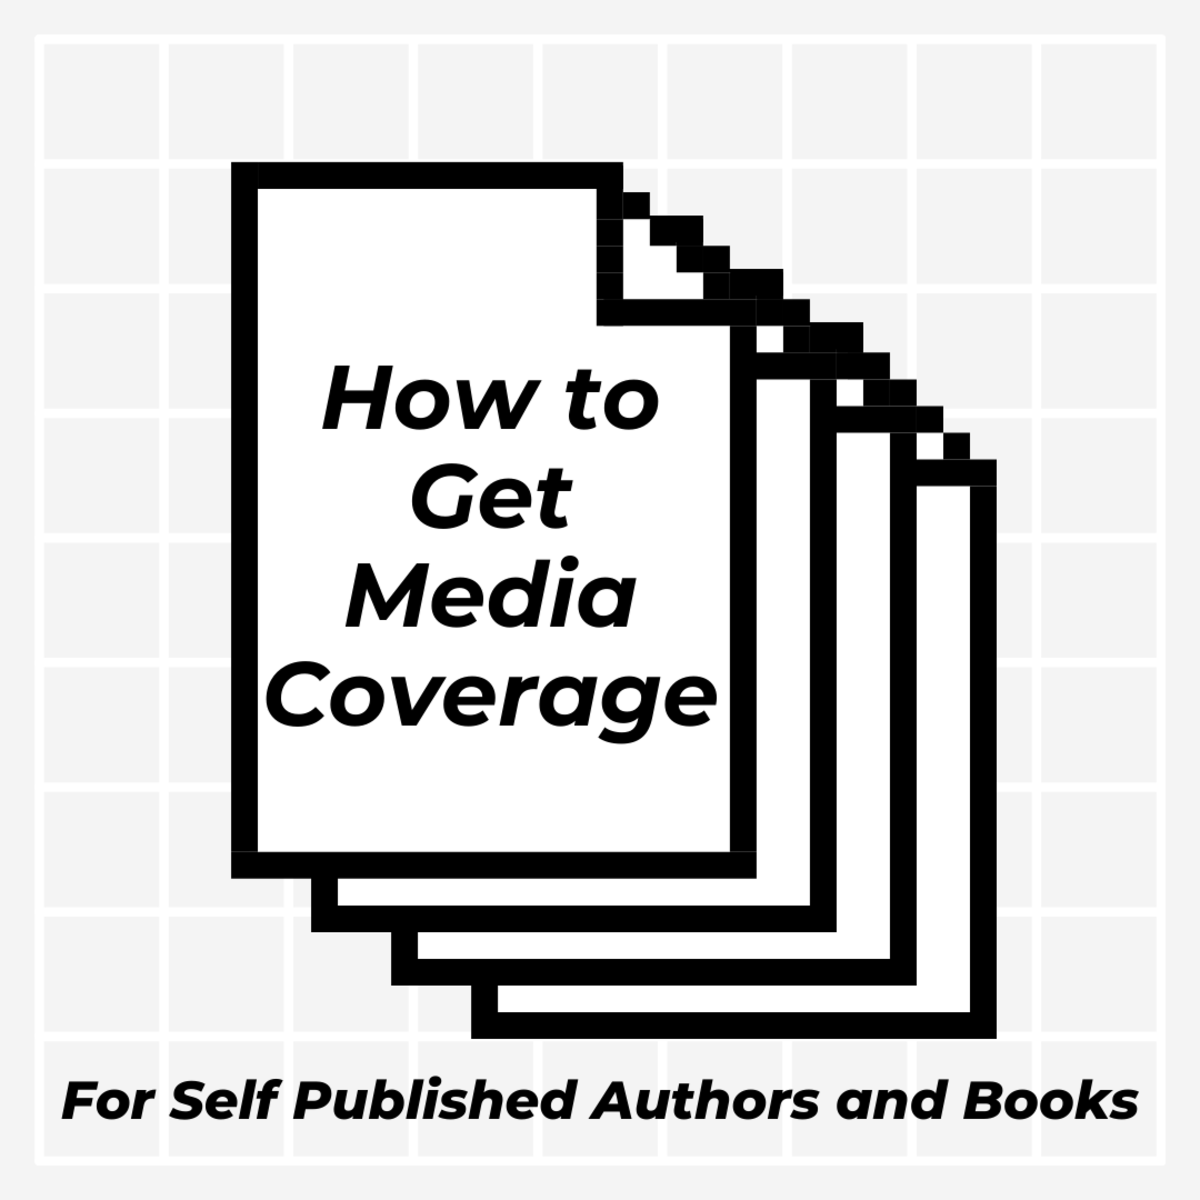 Self published authors can have a tough time getting media coverage. Read for tips on improving your chances of being considered.